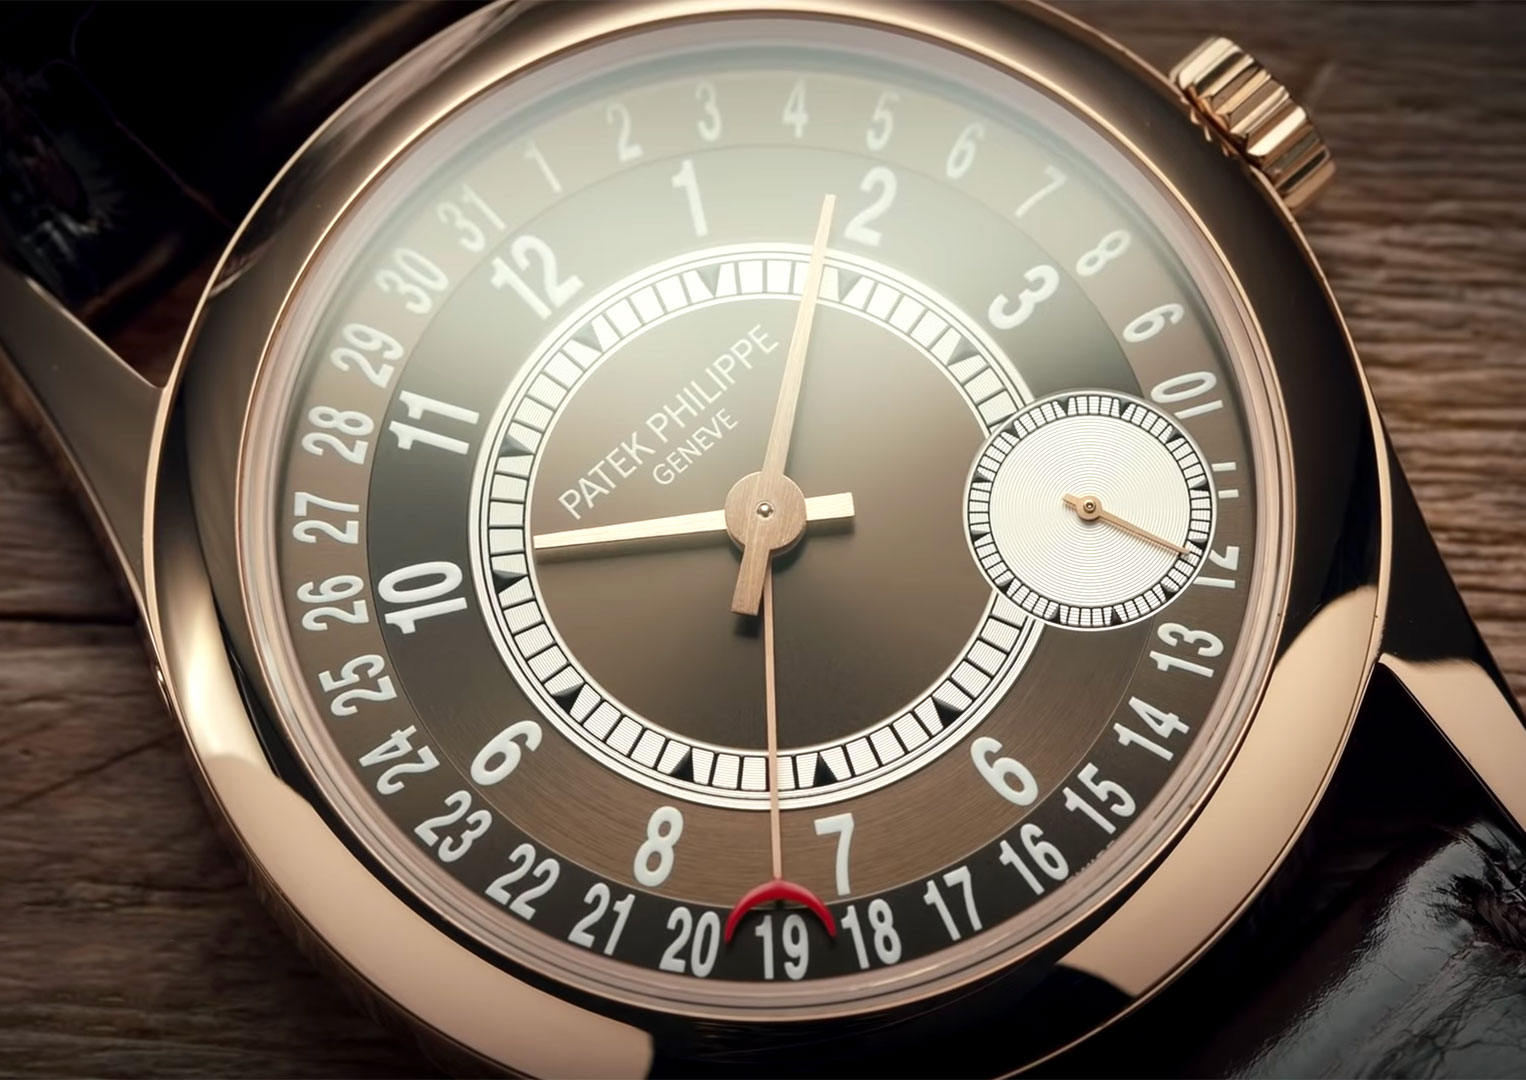 A Patek Philippe can cost anywhere between ten thousand and several hundred thousand pounds